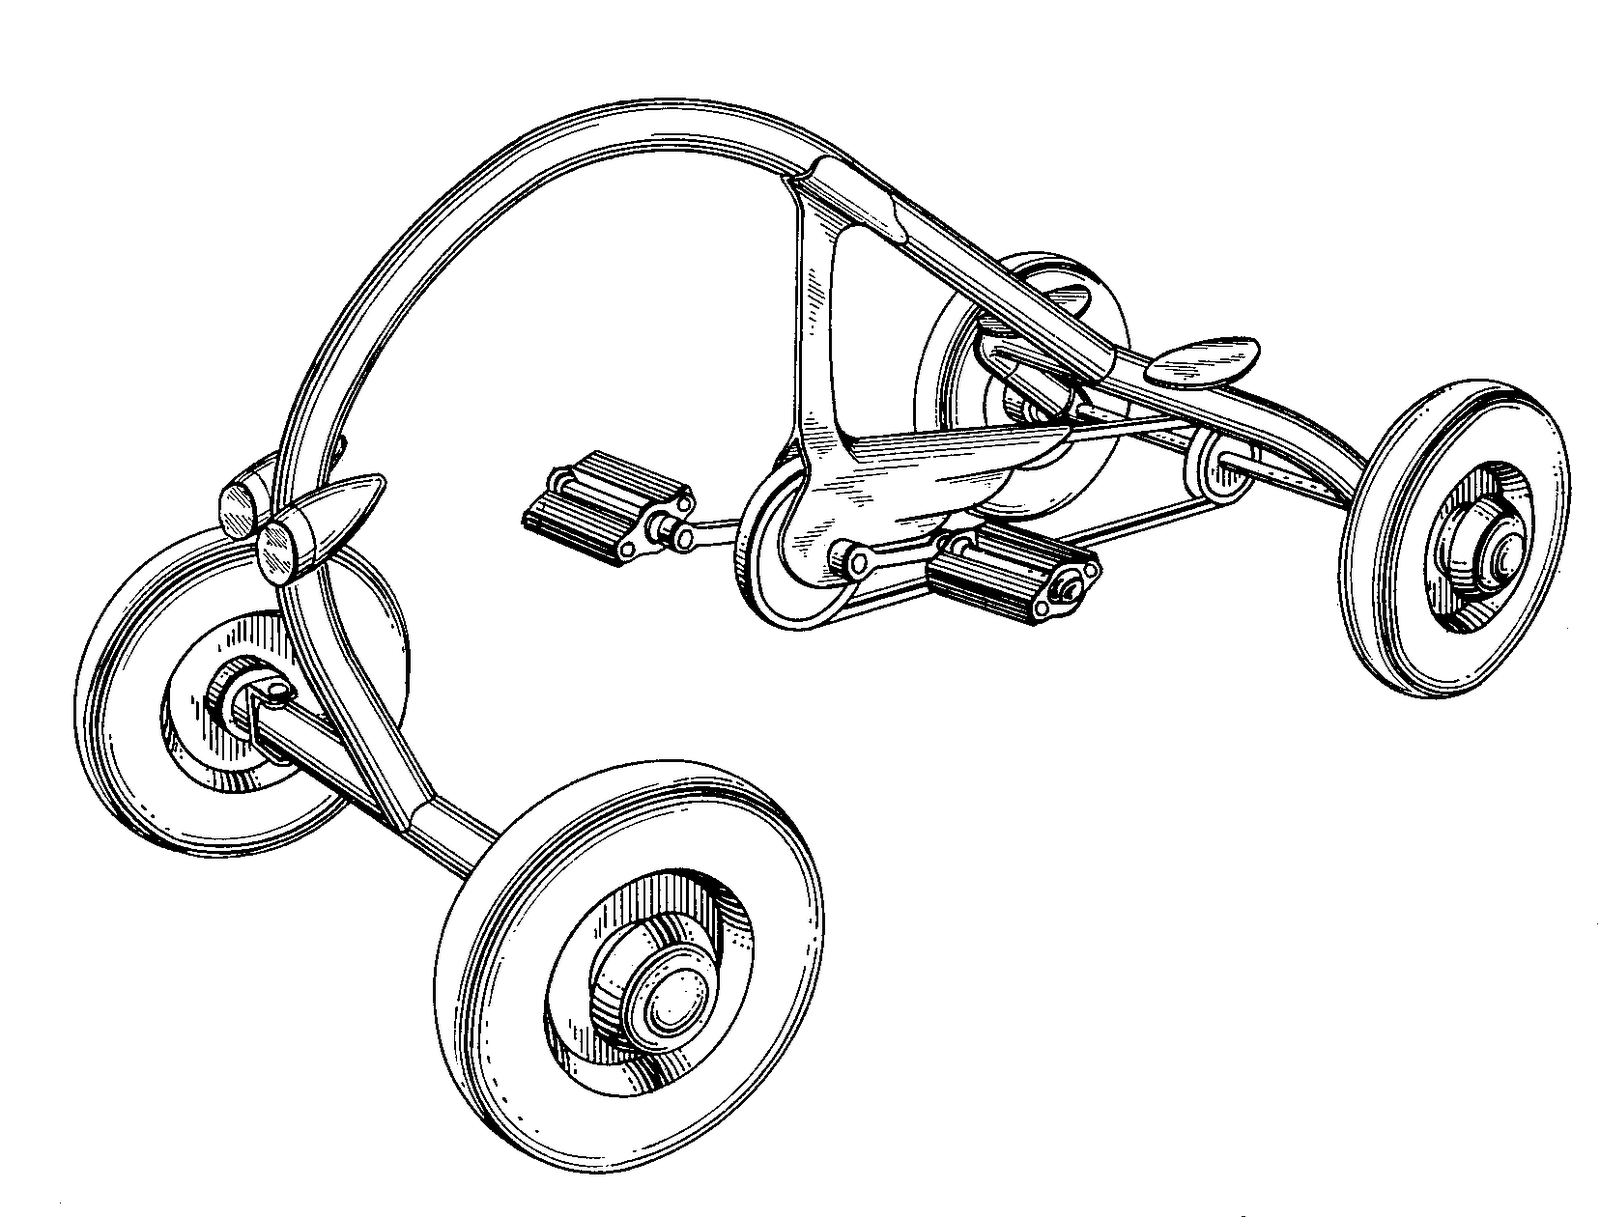 Drawing motorcycle front. The sum of all